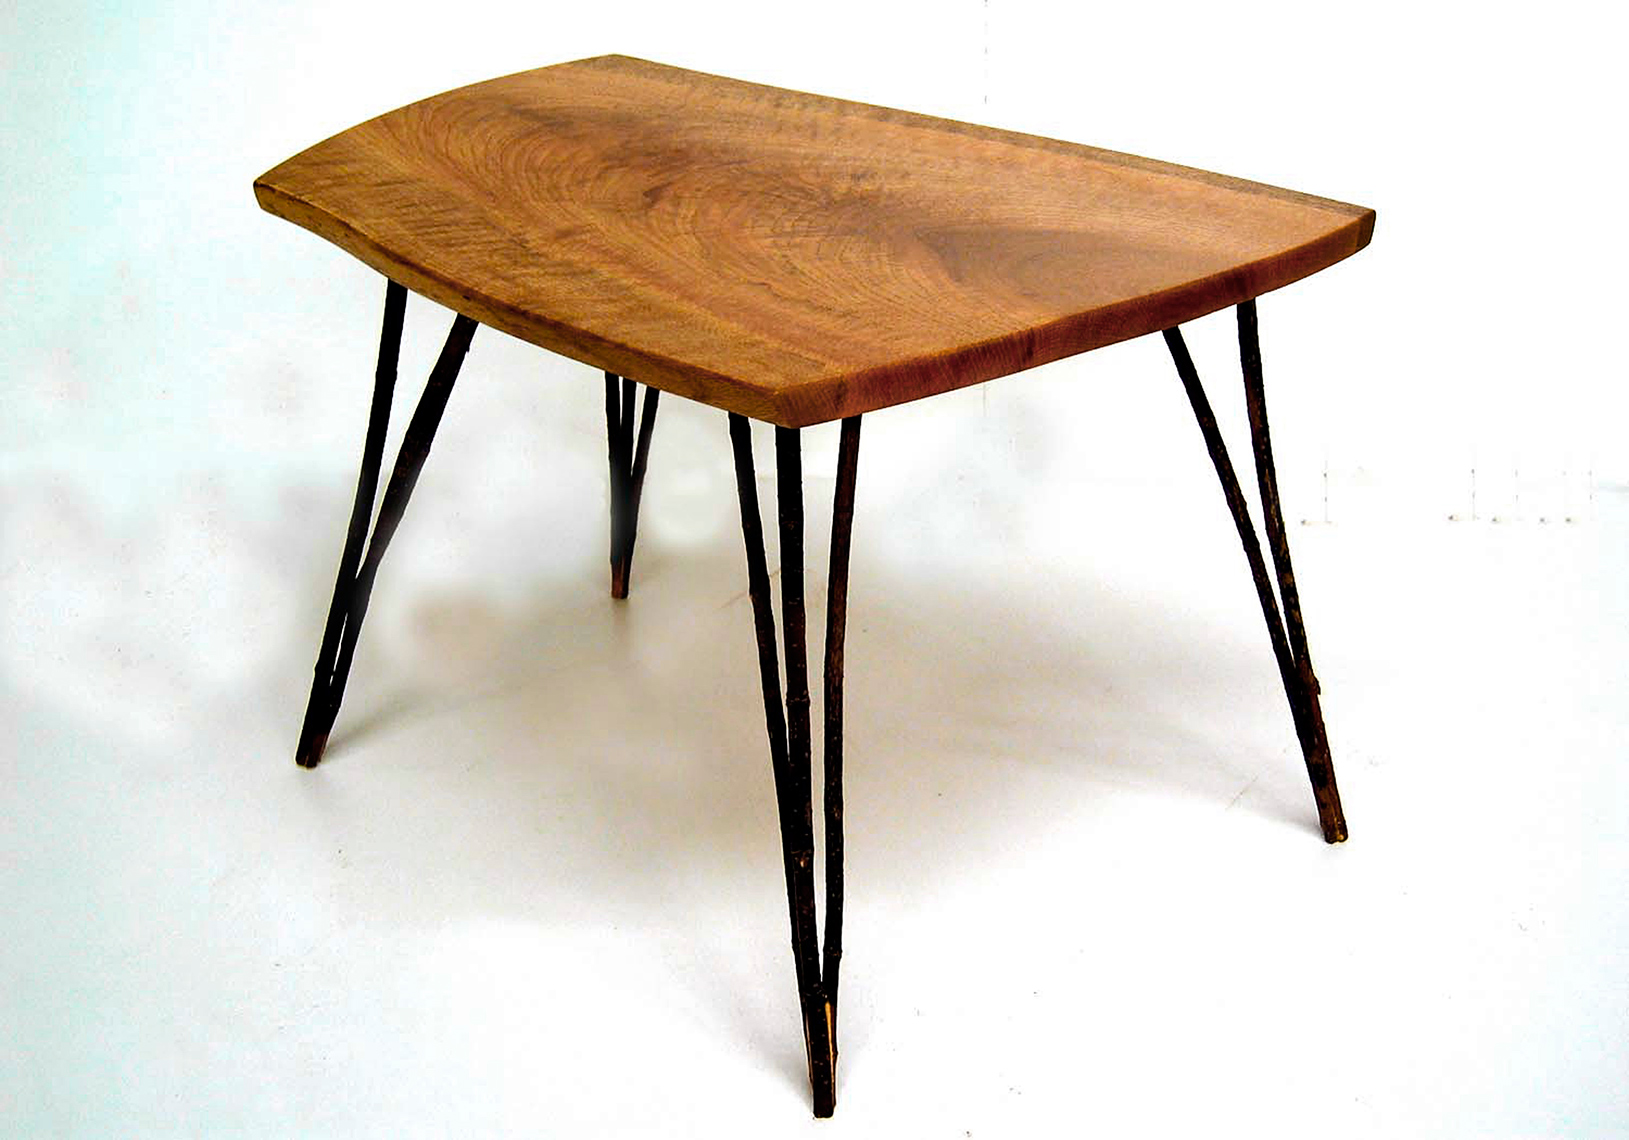 Contemporay Side Table with Figured Oak top and Branch Legs